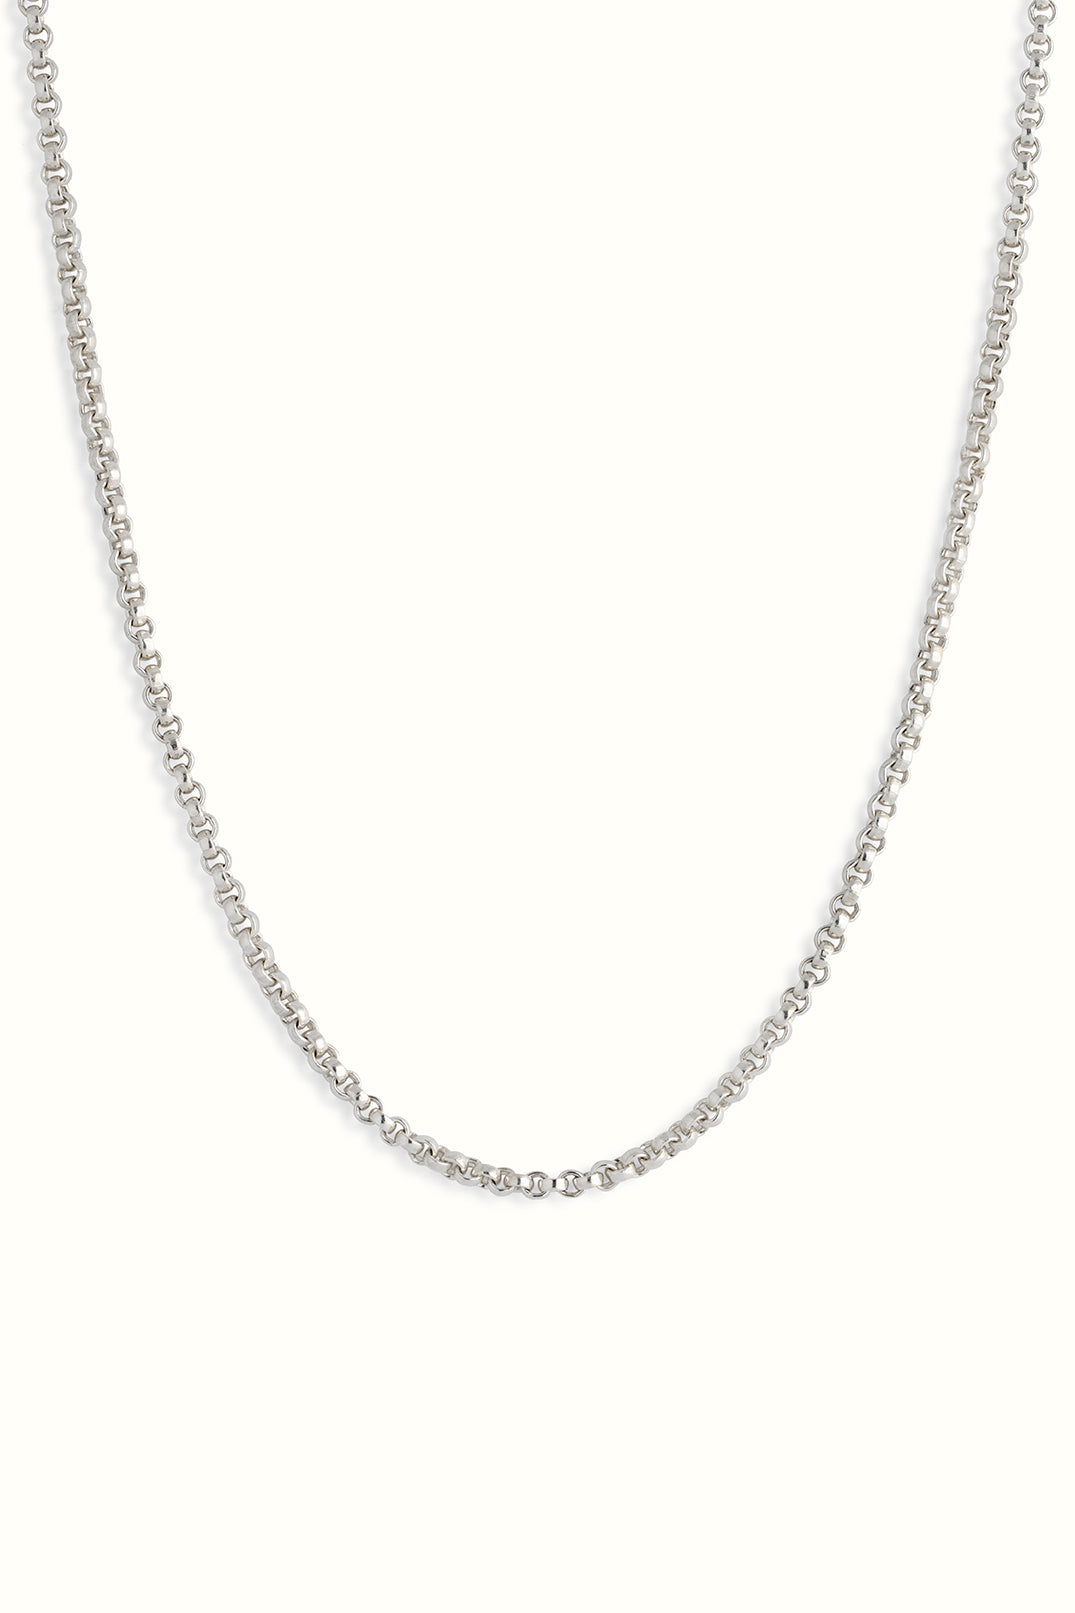 a product picture of a sterling silver rolo chain necklace in front of a white background